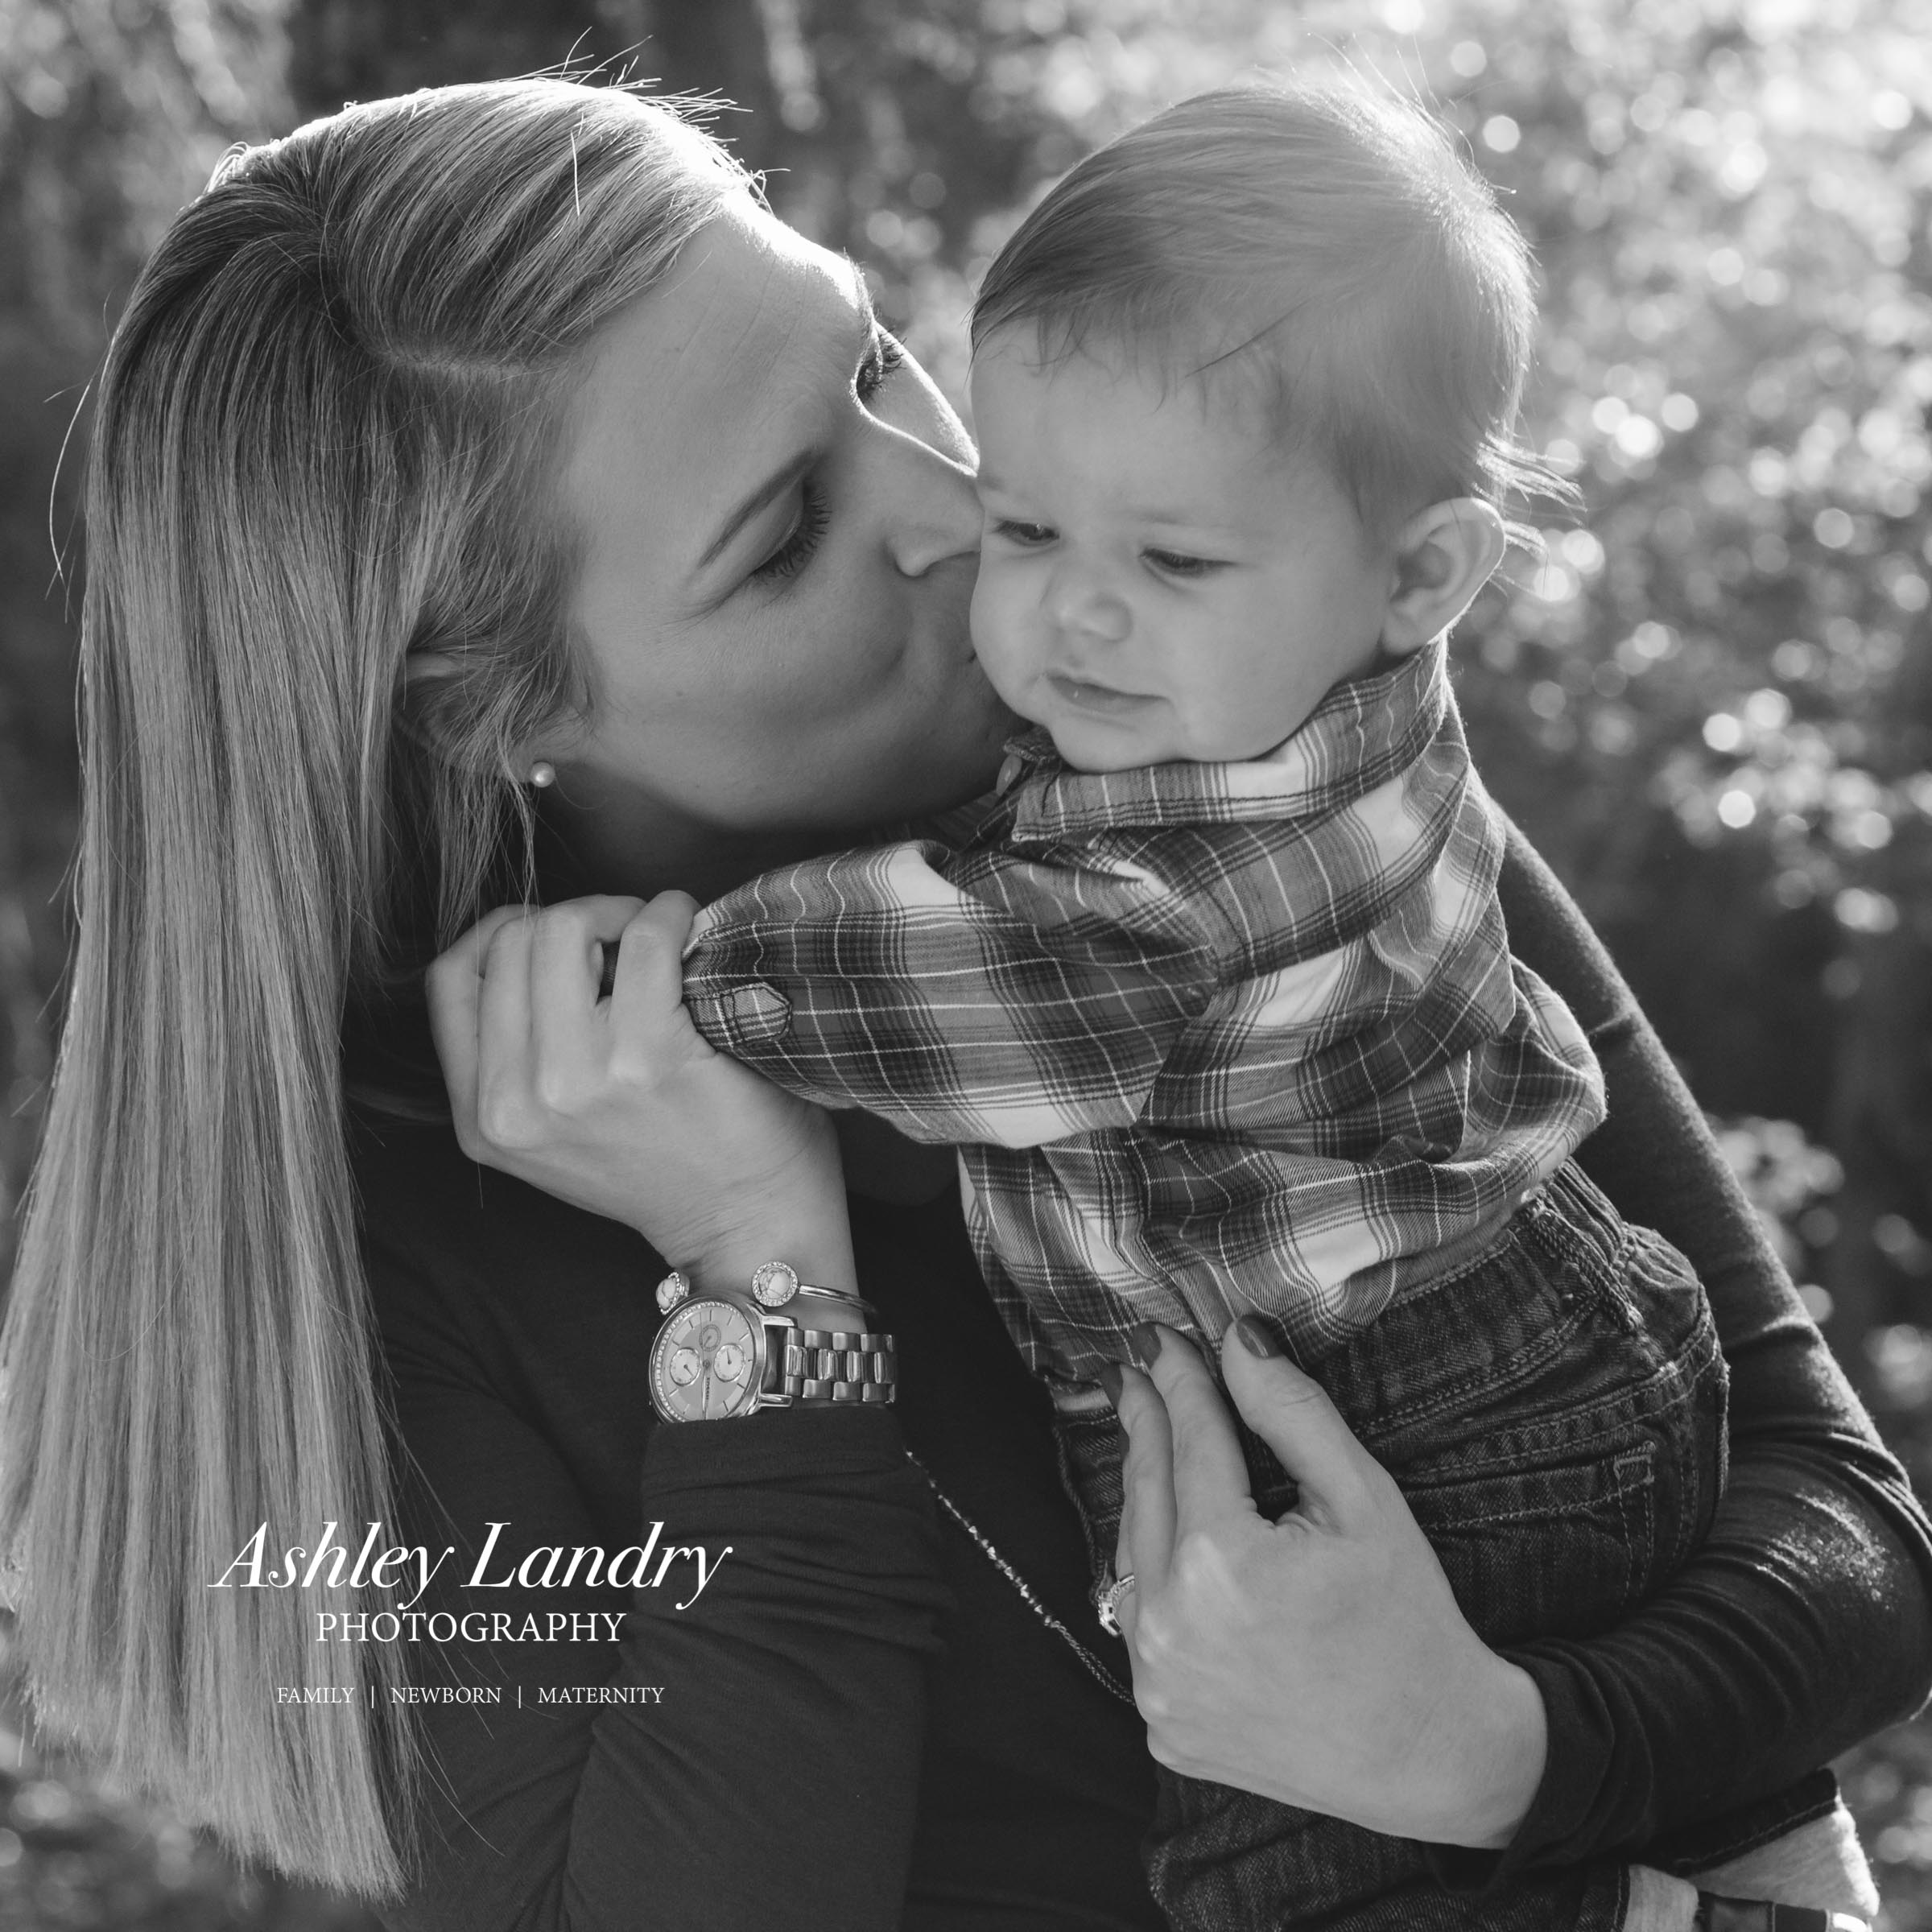 social-media-dec-2016-ashley-landry-photography-18